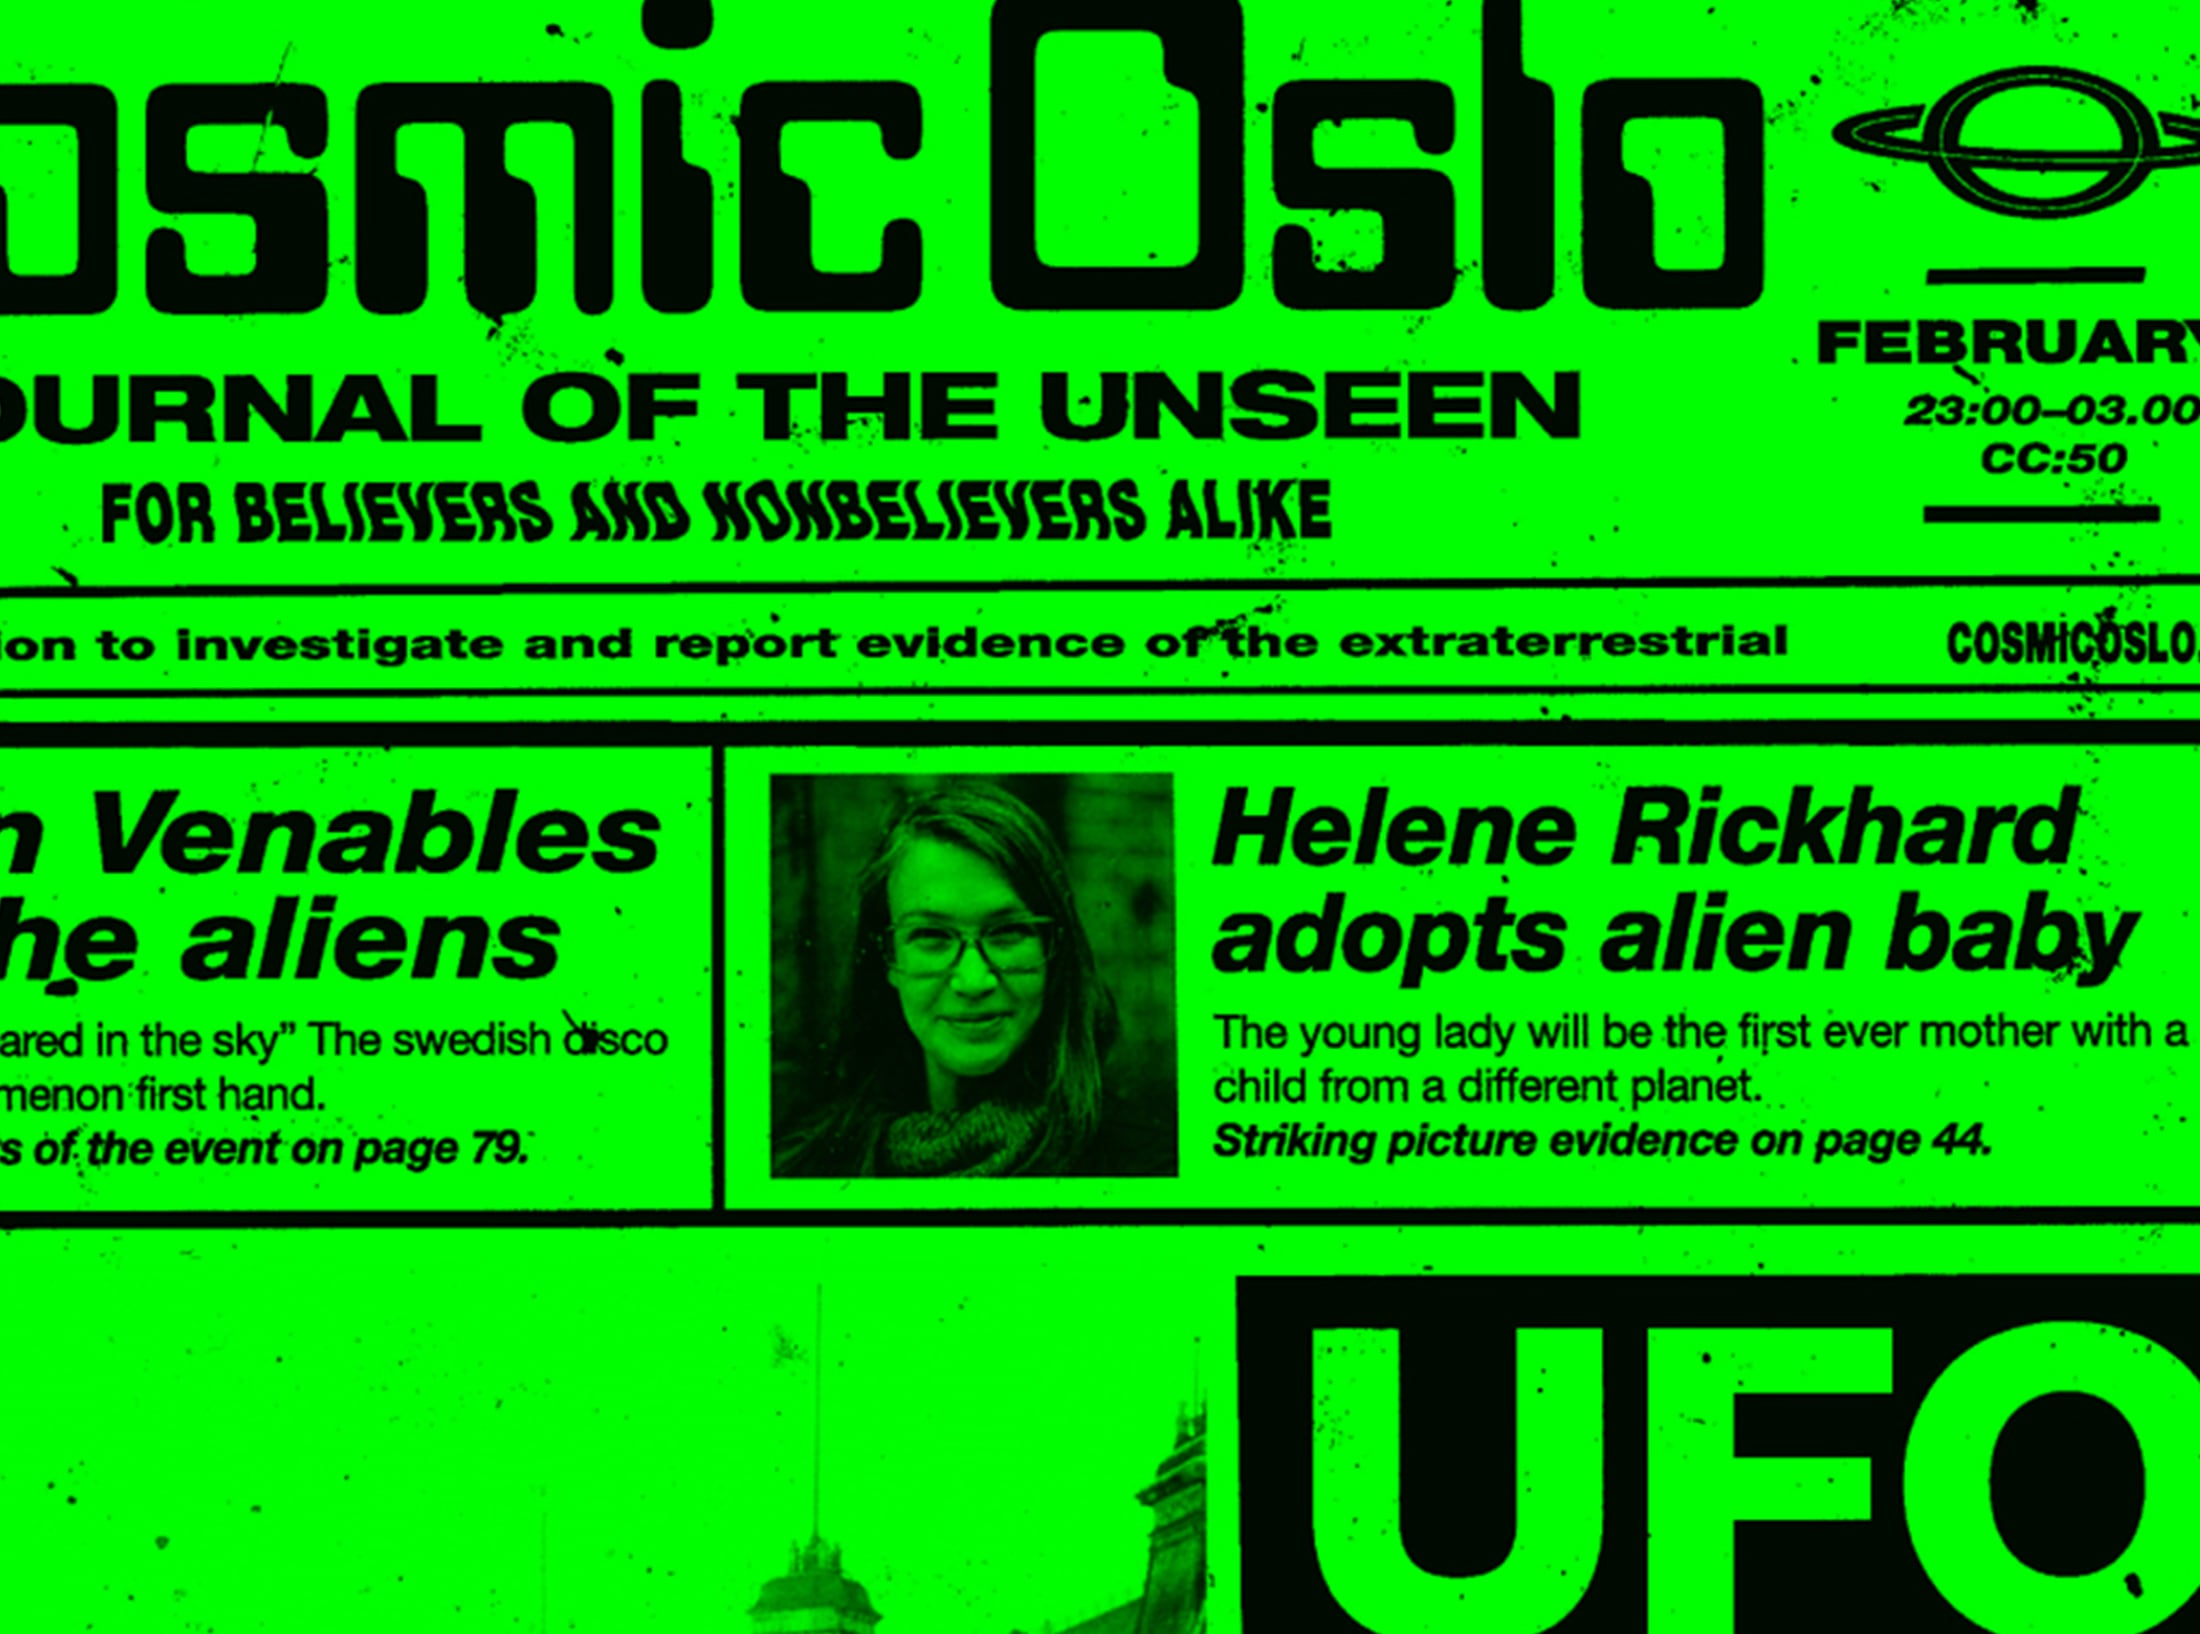 Behind the Amusement Park – Cosmic Oslo February preview